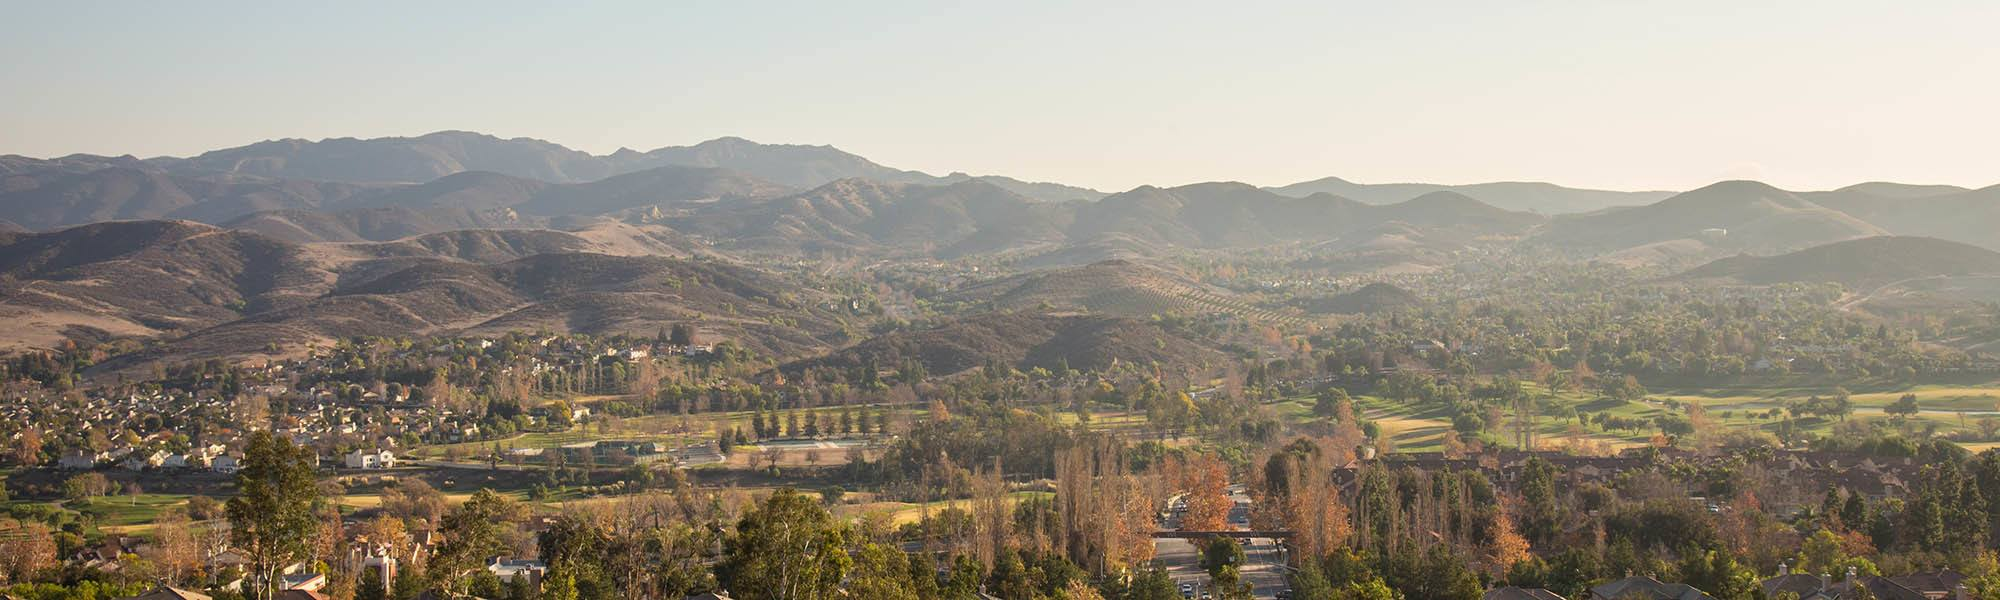 Learn about our neighborhood at The Villas & Overlook at Woodranch Apartment Homes in Simi Valley, CA on our website